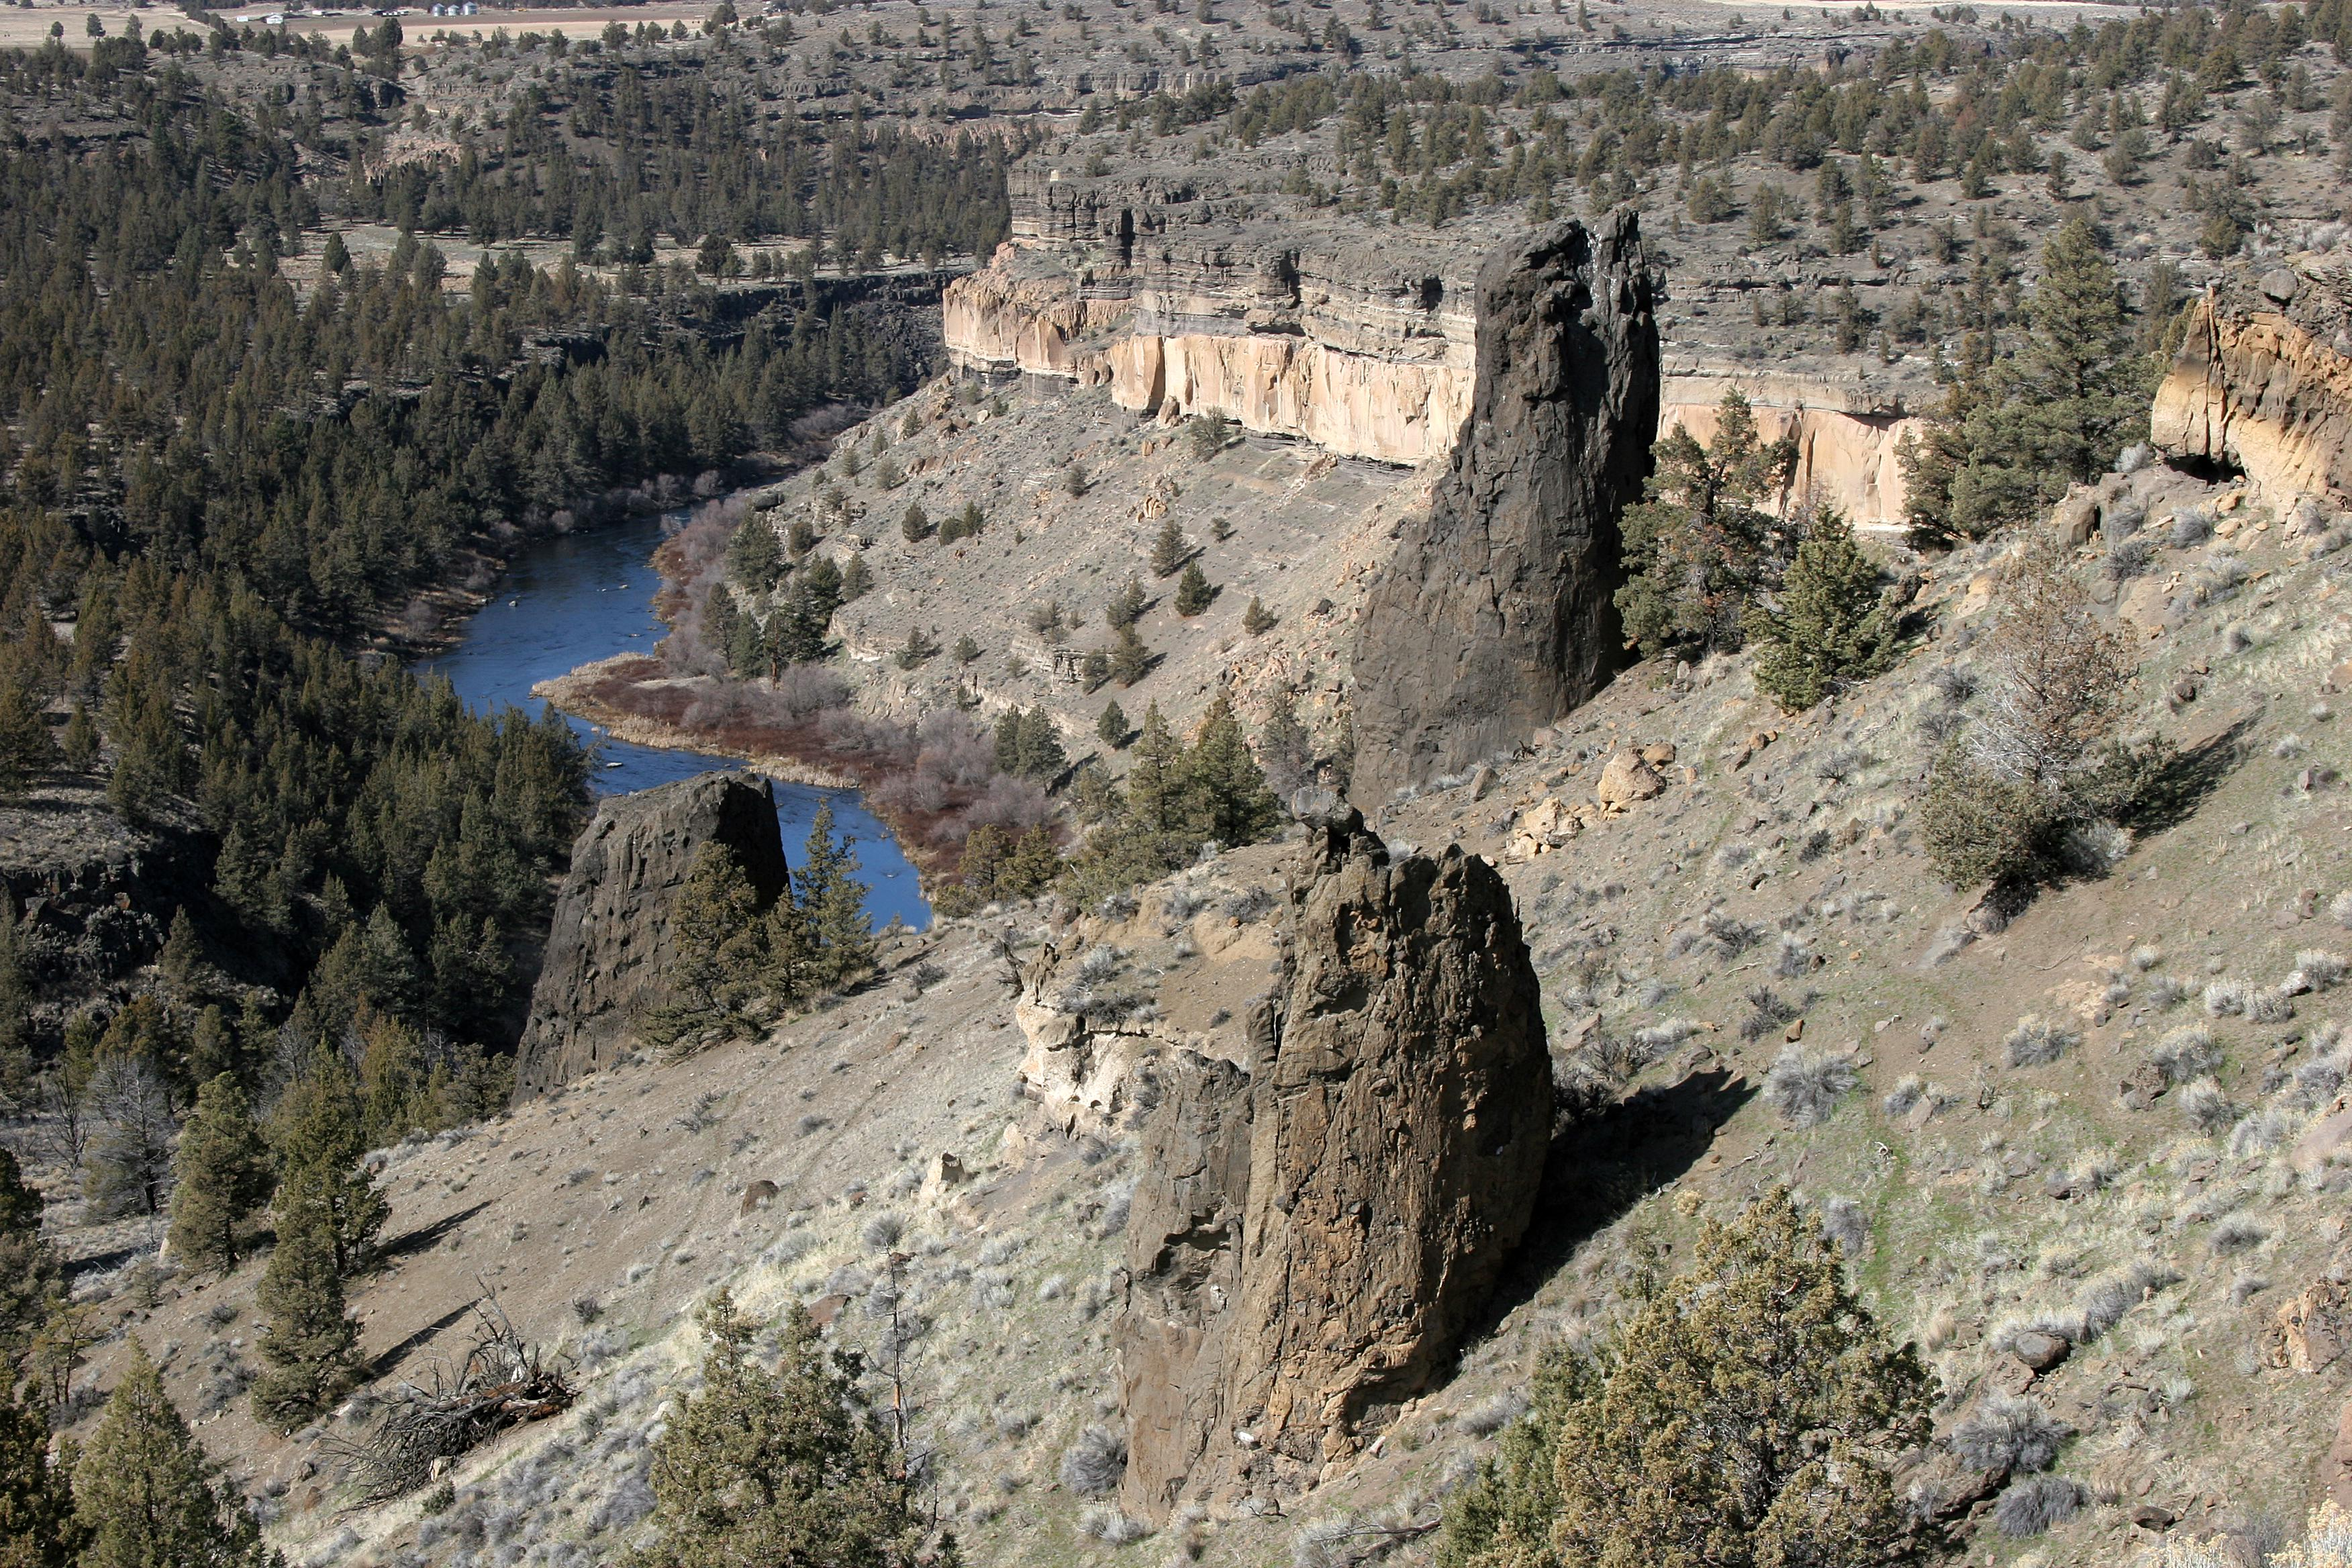 Horn of the Metolius on the Deschutes National Forest (USDA Forest Service)